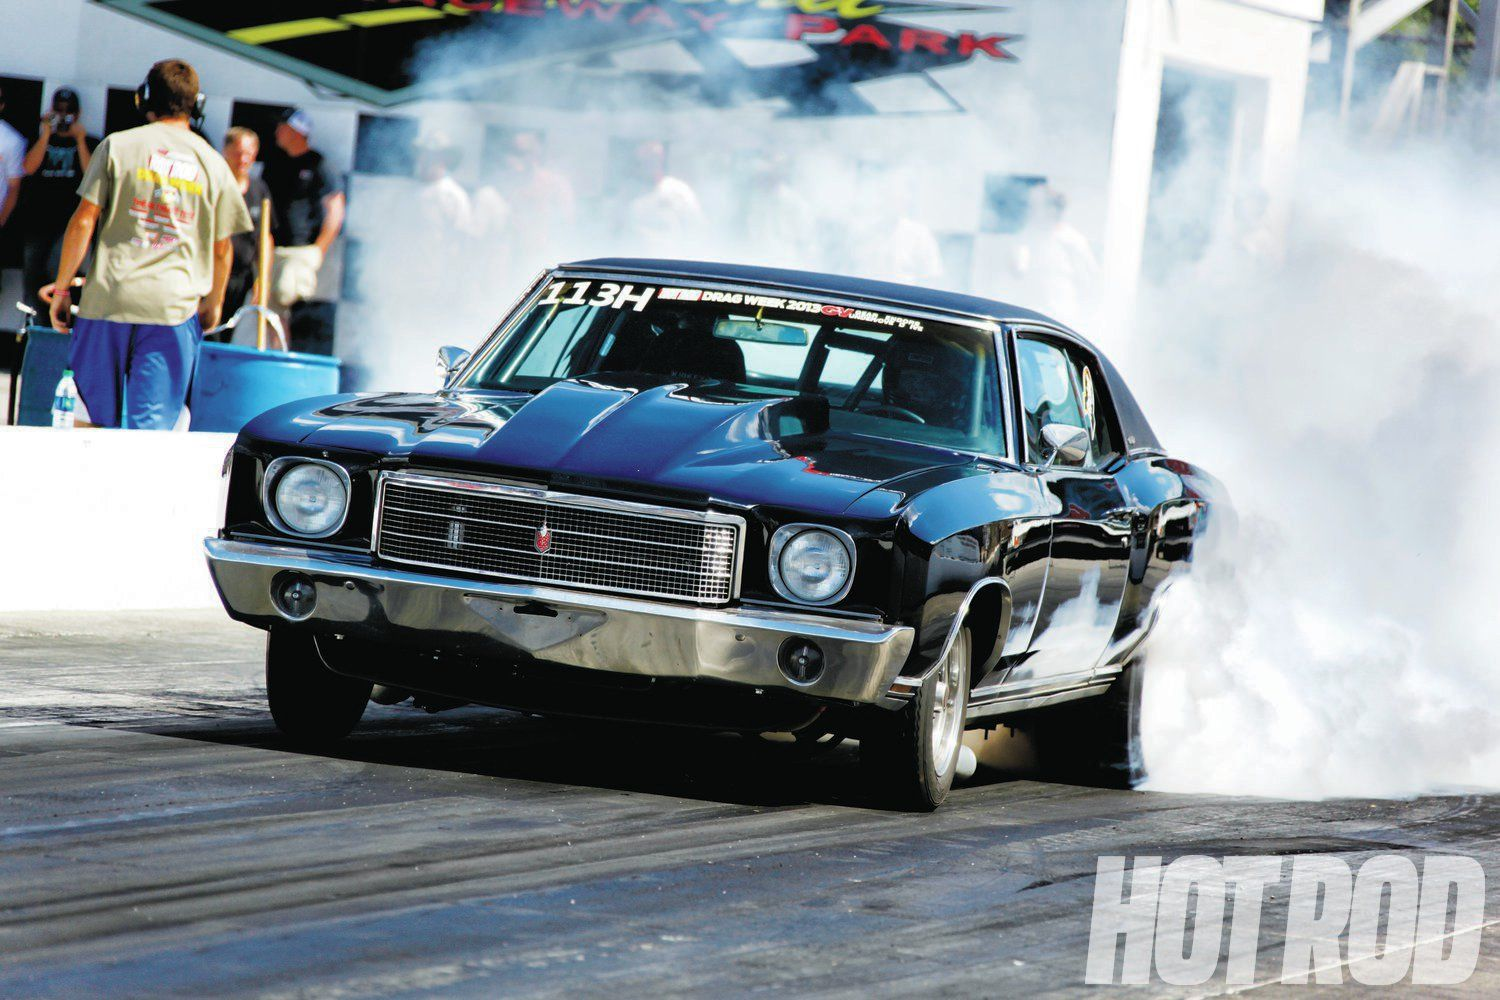 1972 monte carlo supercharged 383ci stroker love american style pinterest monte carlo cars and chevy monte carlo